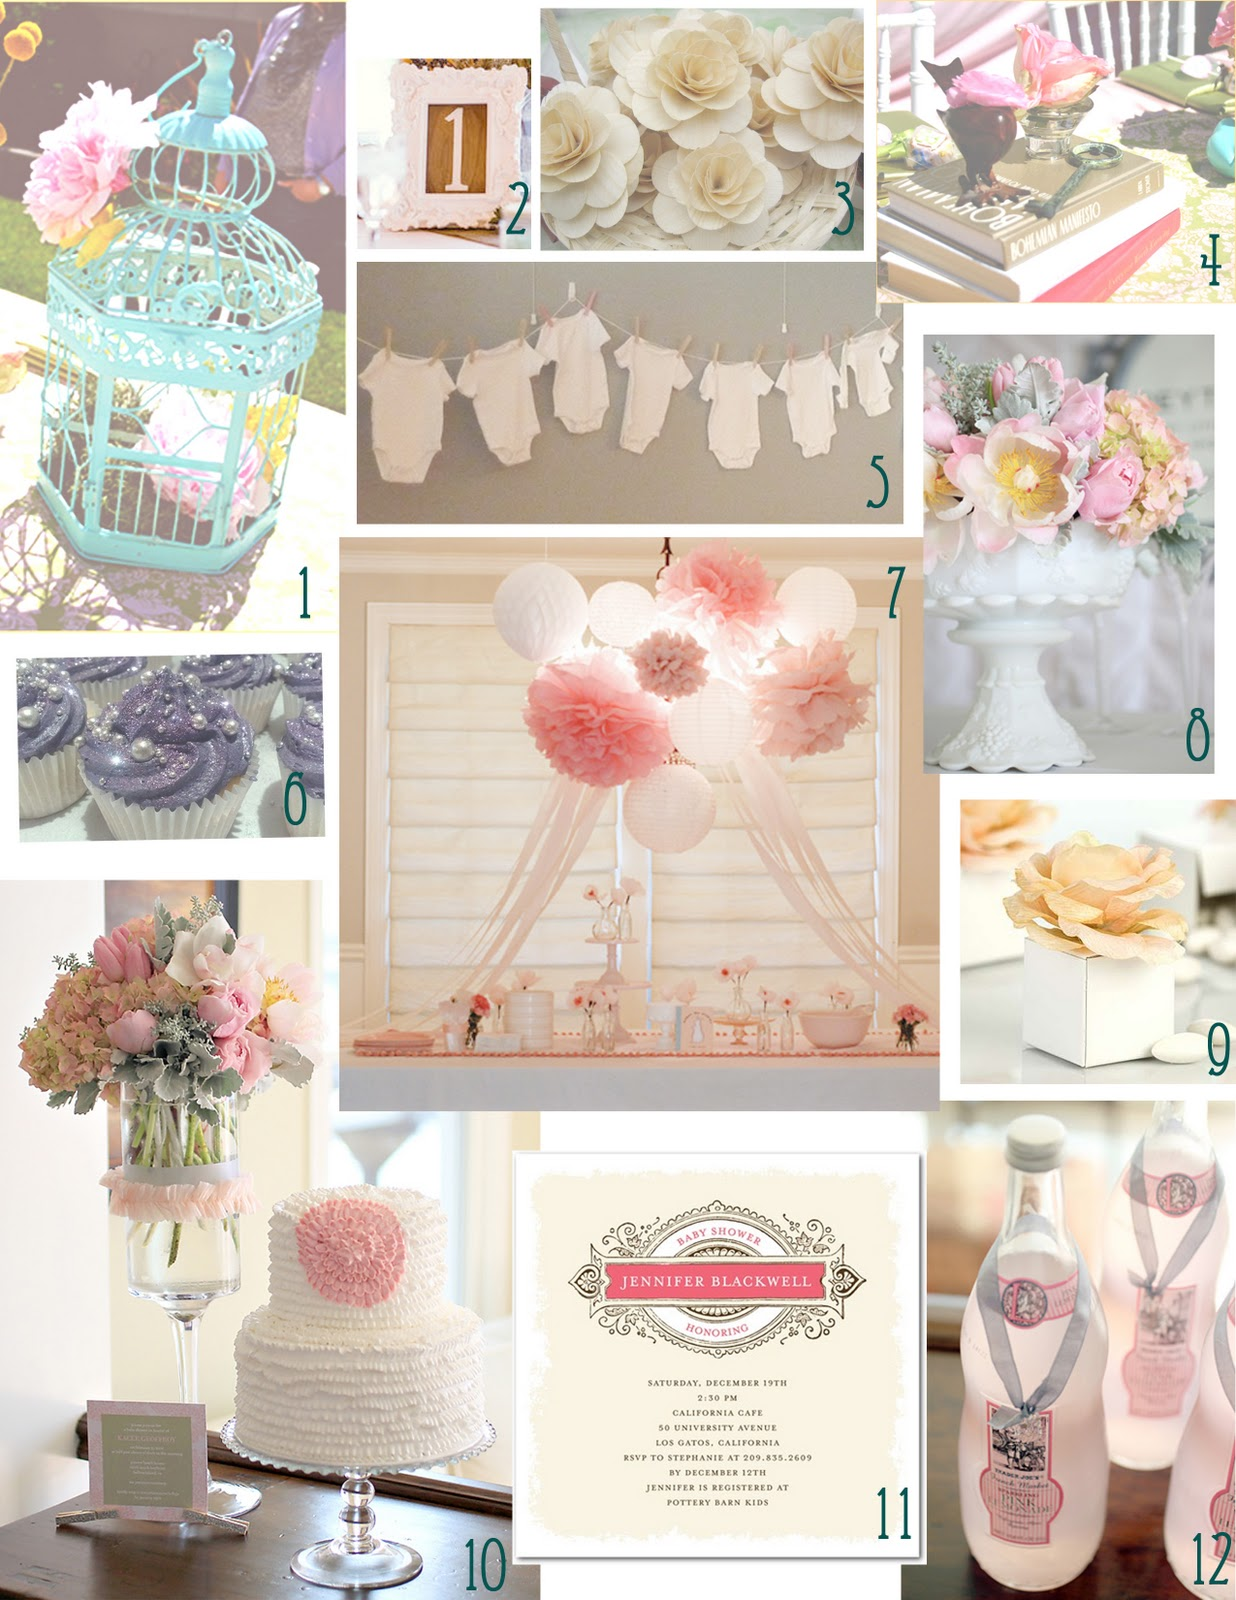 Jae Bee Designs: My best friend's baby shower